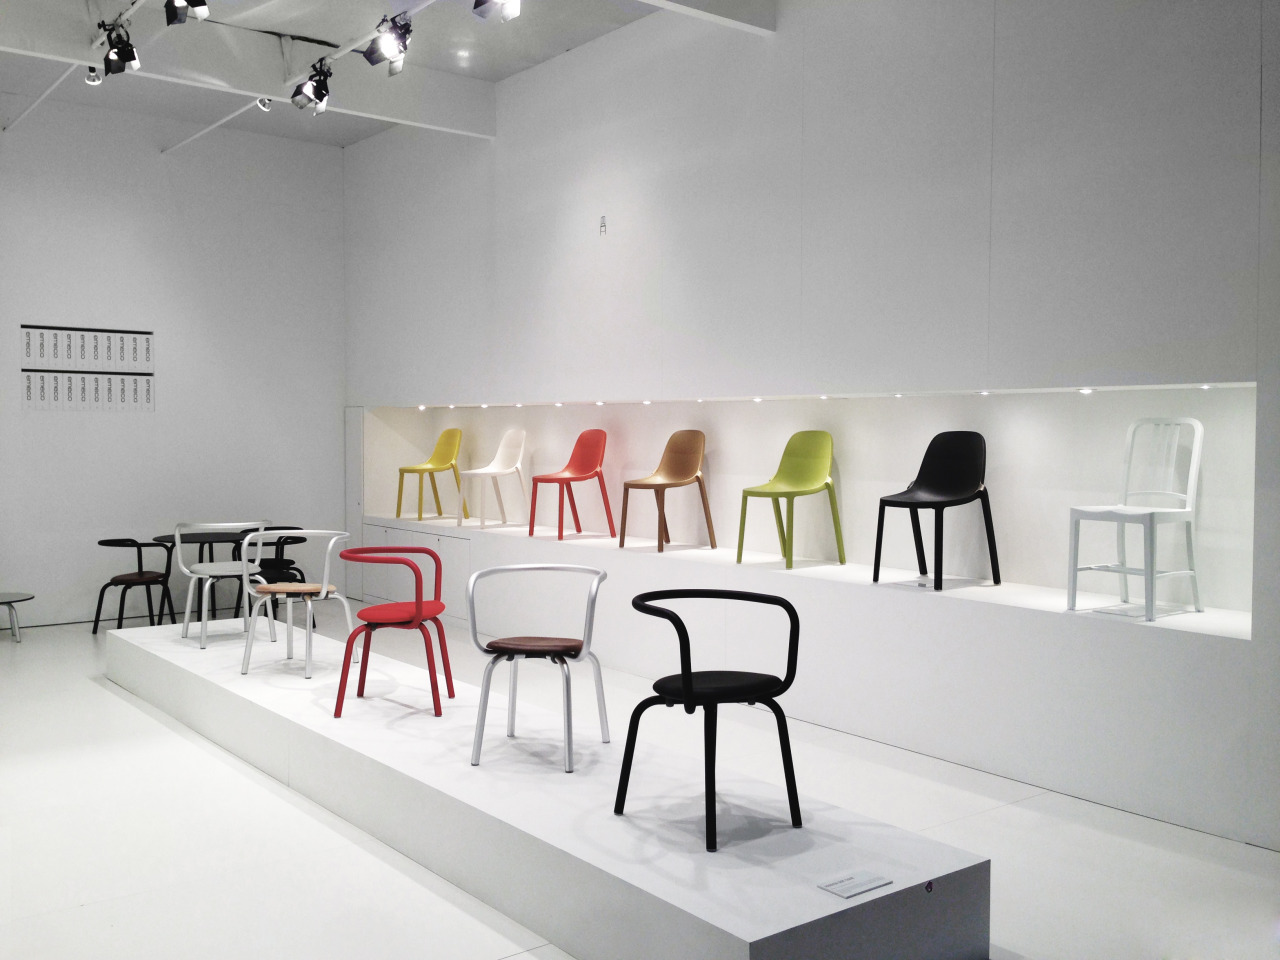 Emeco + Grcic @ICFF, New York City, NY. Jacob K. Javits Convention Center May 18-21, 2013, Stand 1732.